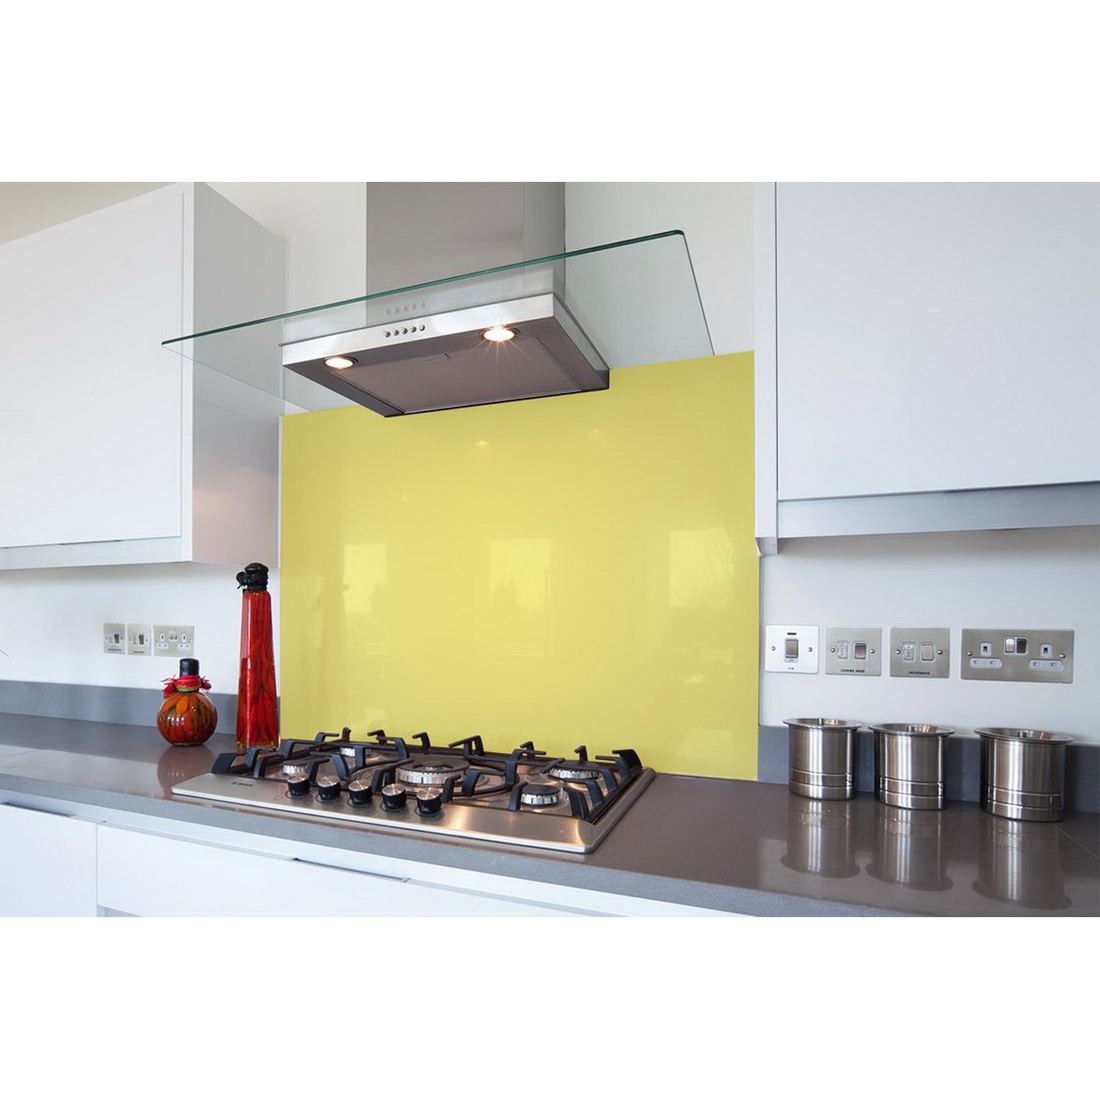 Splashback 900 x 750 mm Glass Silver 9X75SPLASHMS